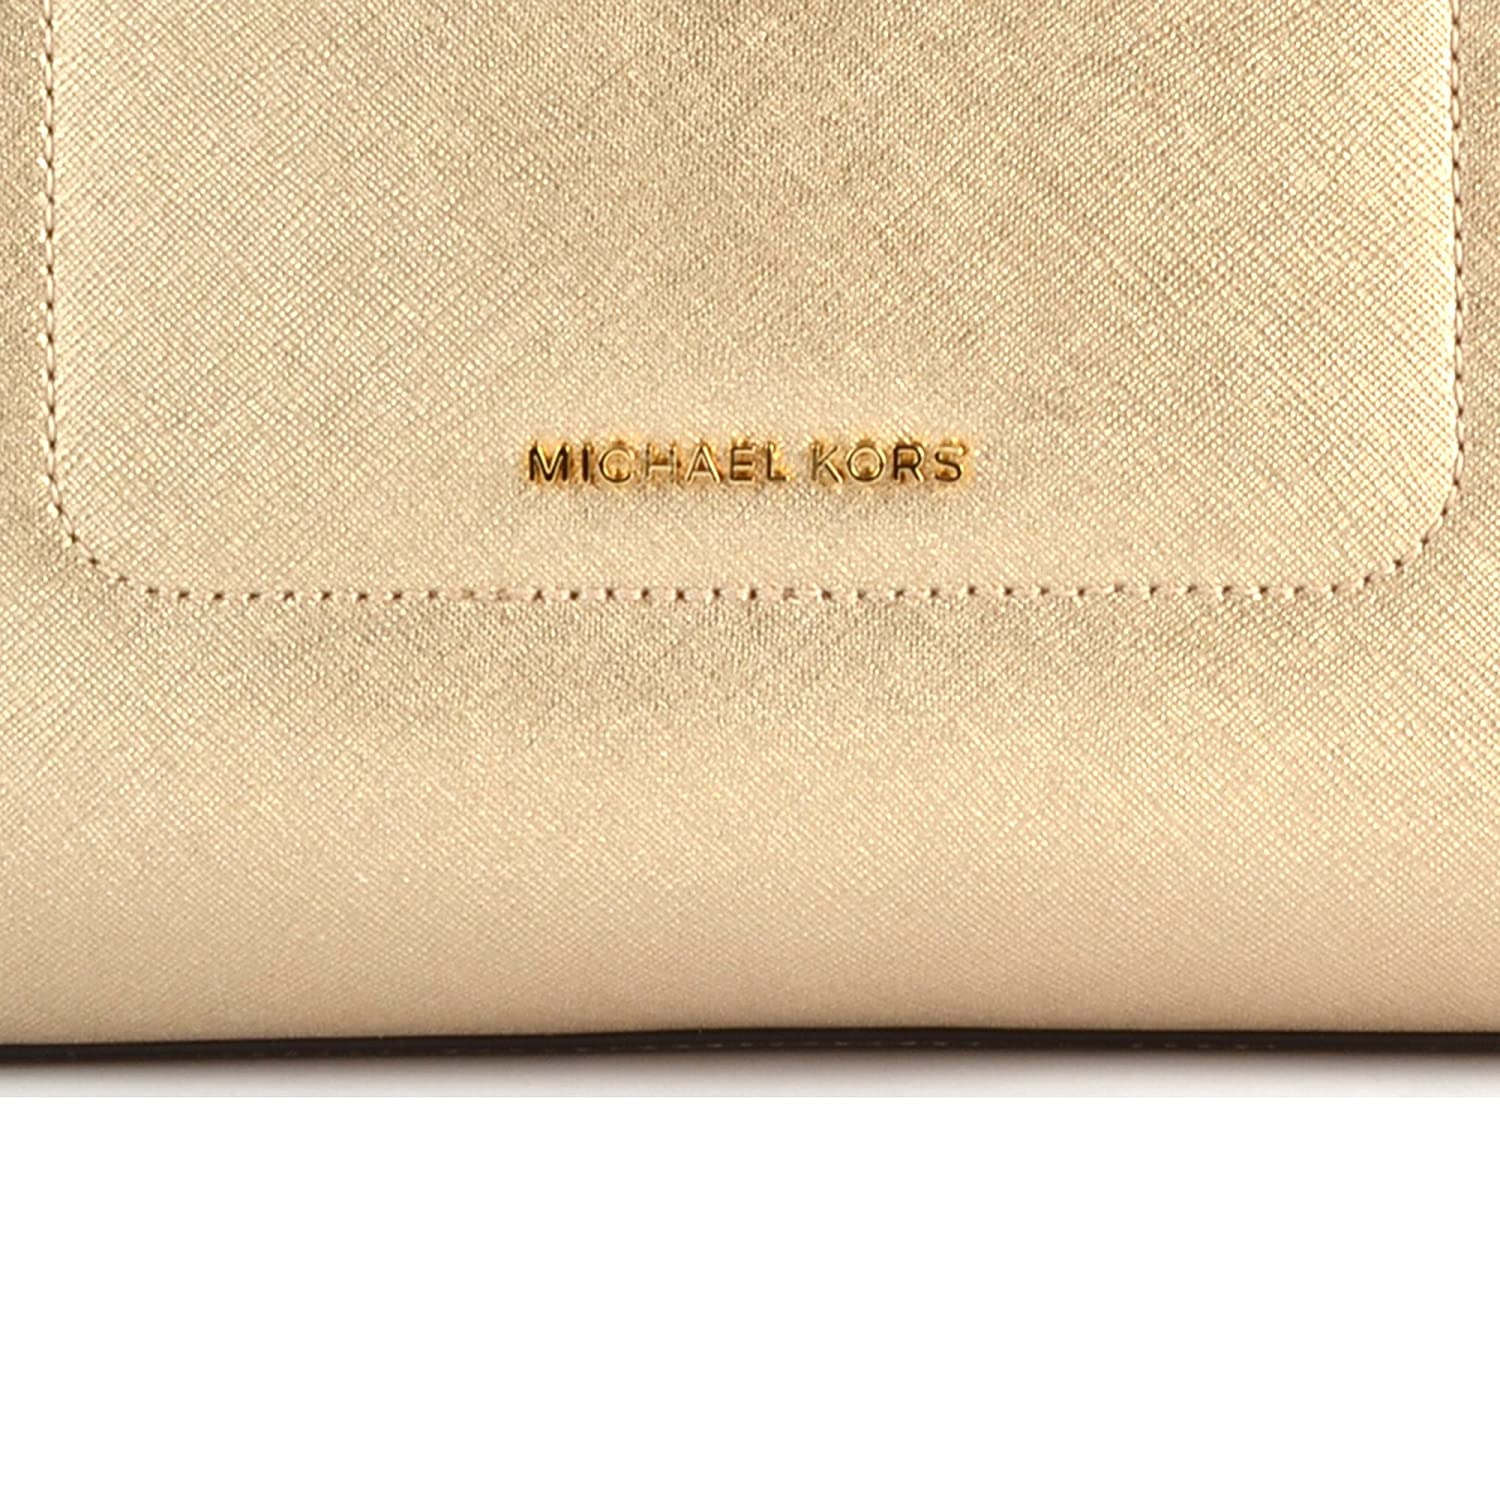 b866fd57829d MICHAEL by Michael Kors Walsh Pale Gold Leather Medium Tote Bag one size Pale  Gold: Amazon.co.uk: Shoes & Bags